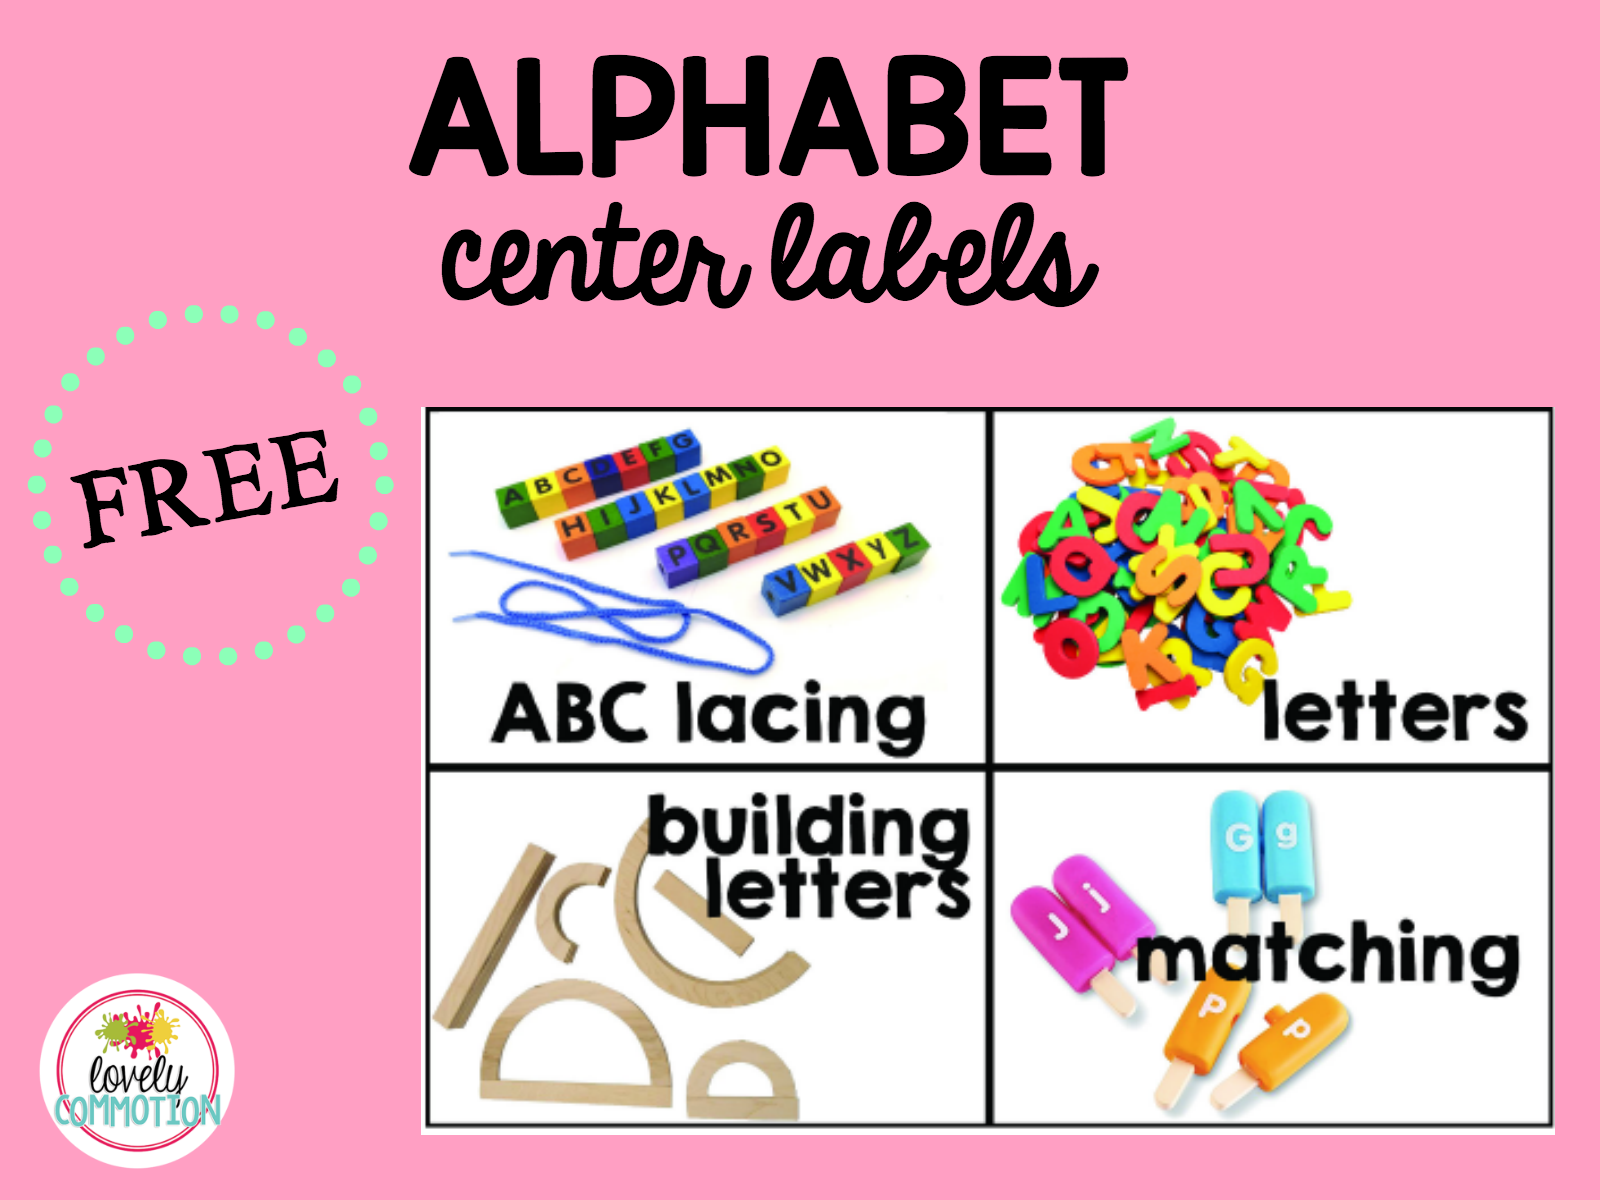 Alphabet center labels pic.png